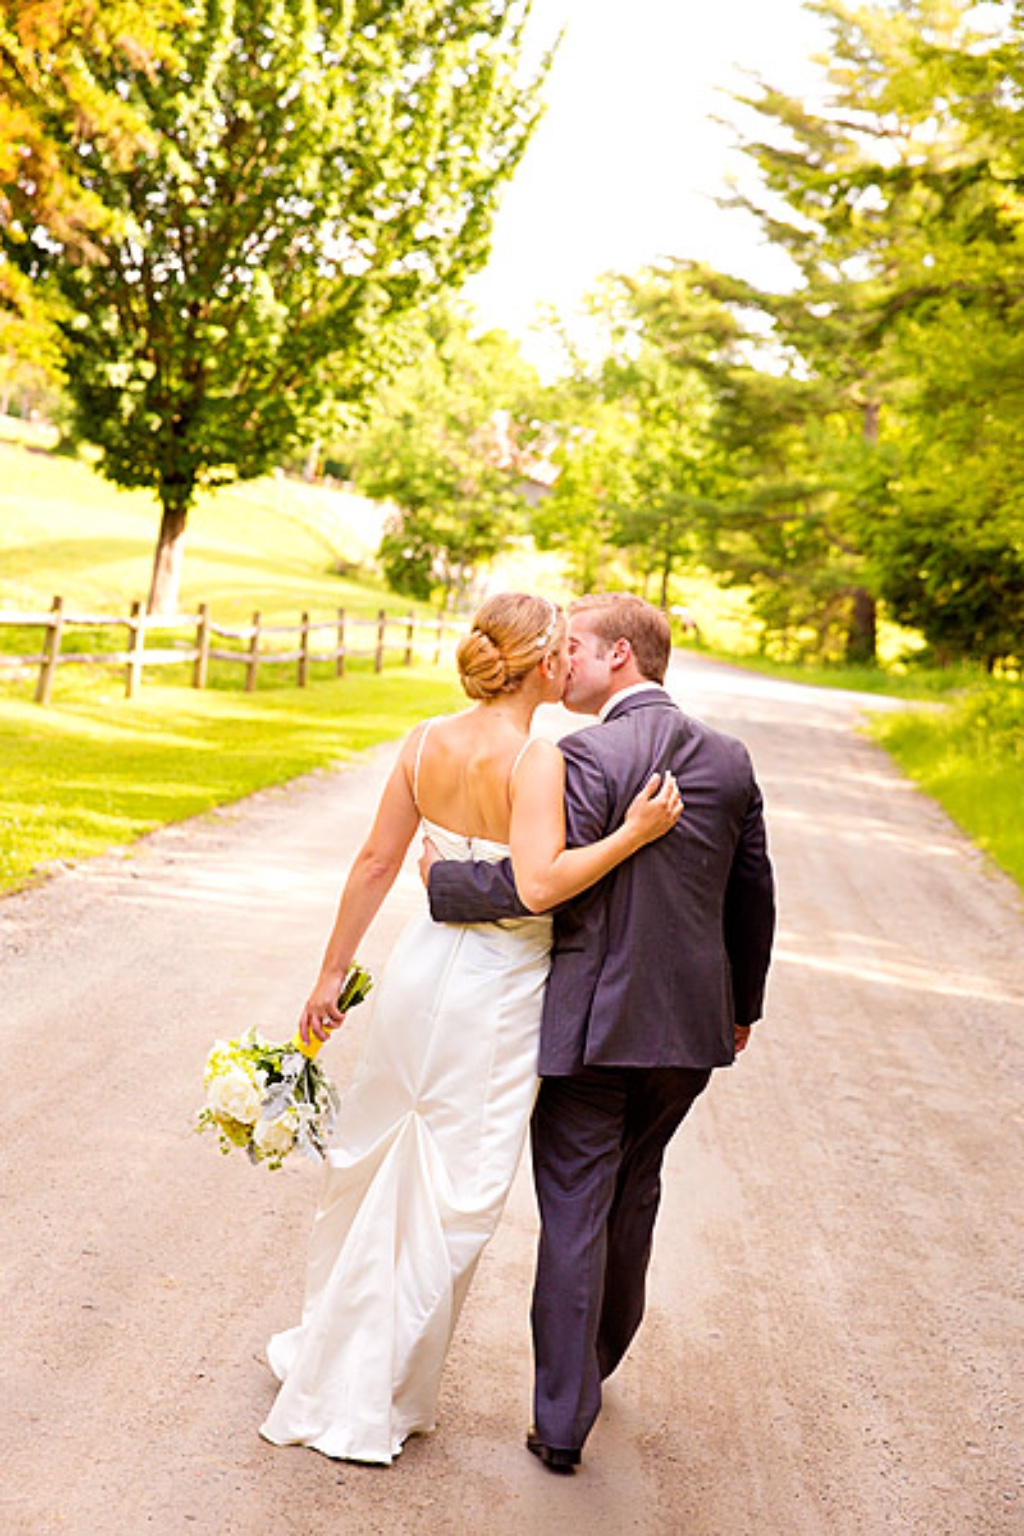 10% OFF RATES + NO TRAVEL FEES ! - NOW EXCLUSIVELY FOR WEDDING CHICKS BLOG READERS !